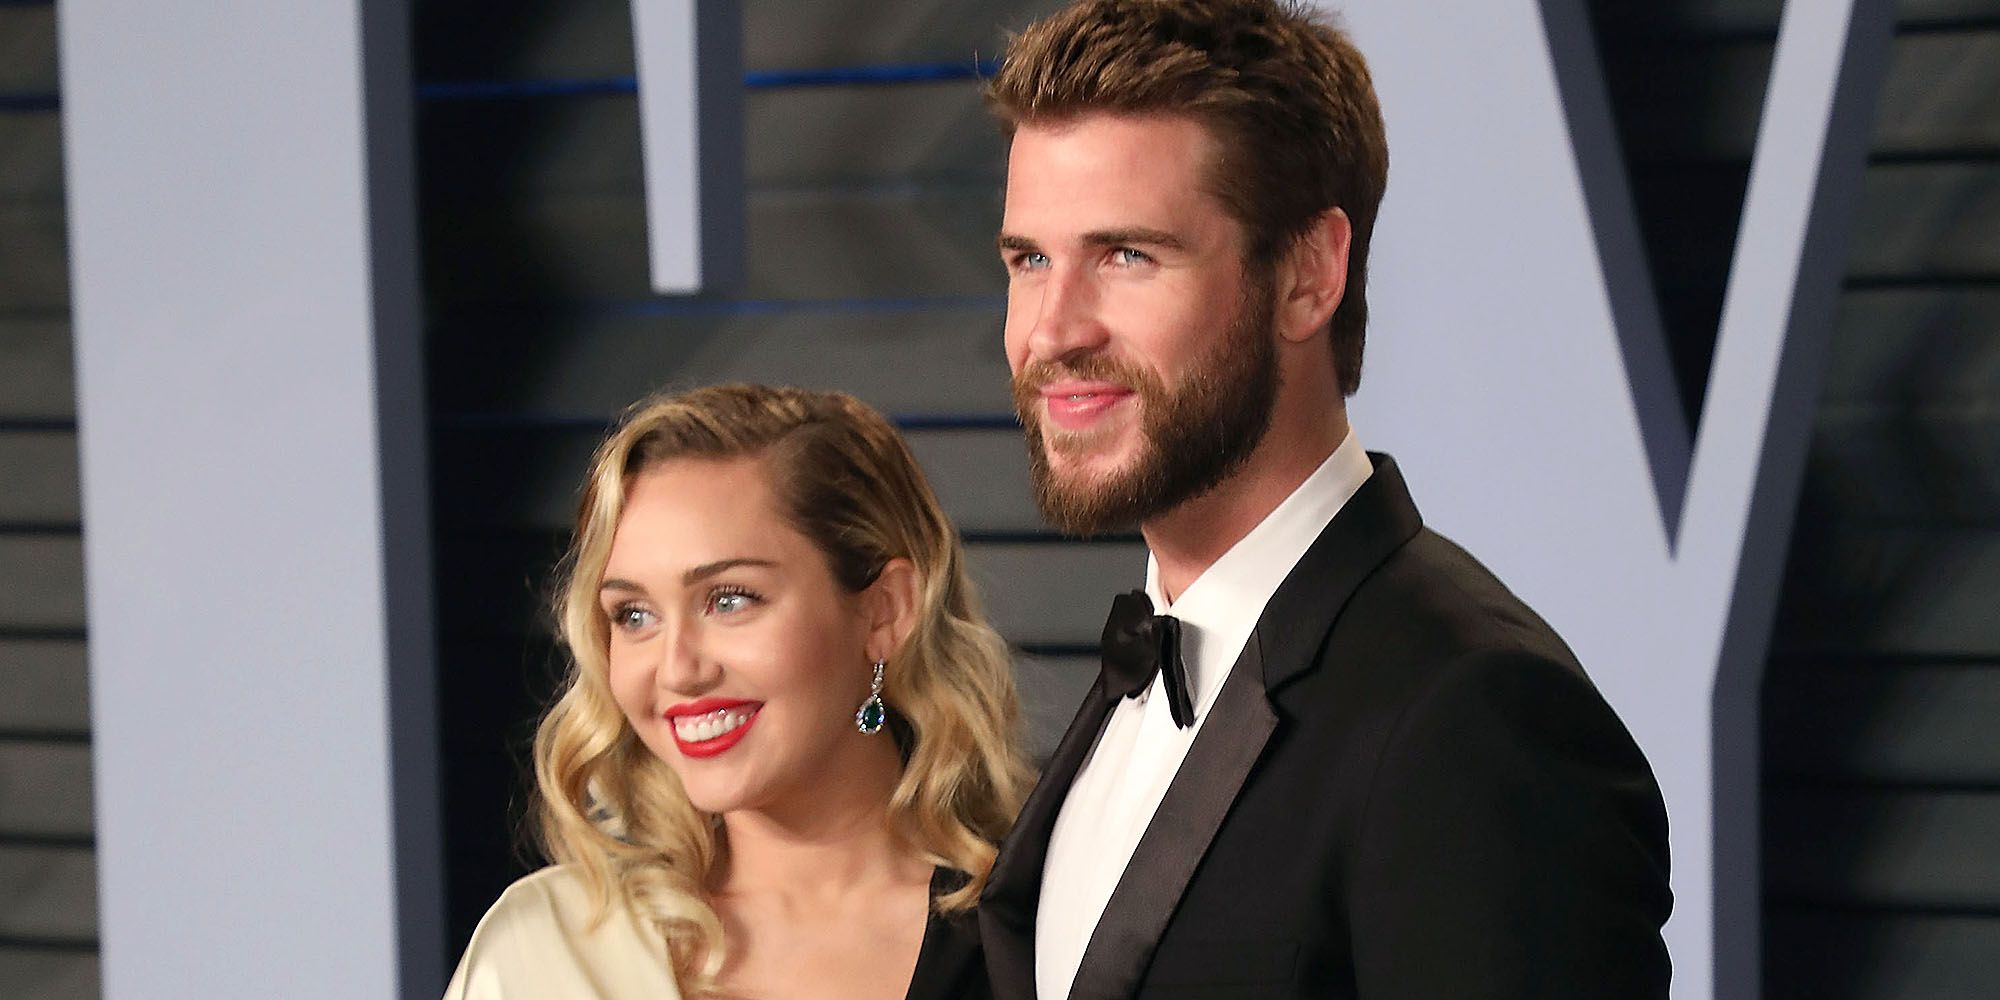 Miley Cyrus And Fiance Liam Hemsworth Join Other Celebrities Who Have Lost Their Homes To California's Ravaging Wildfire